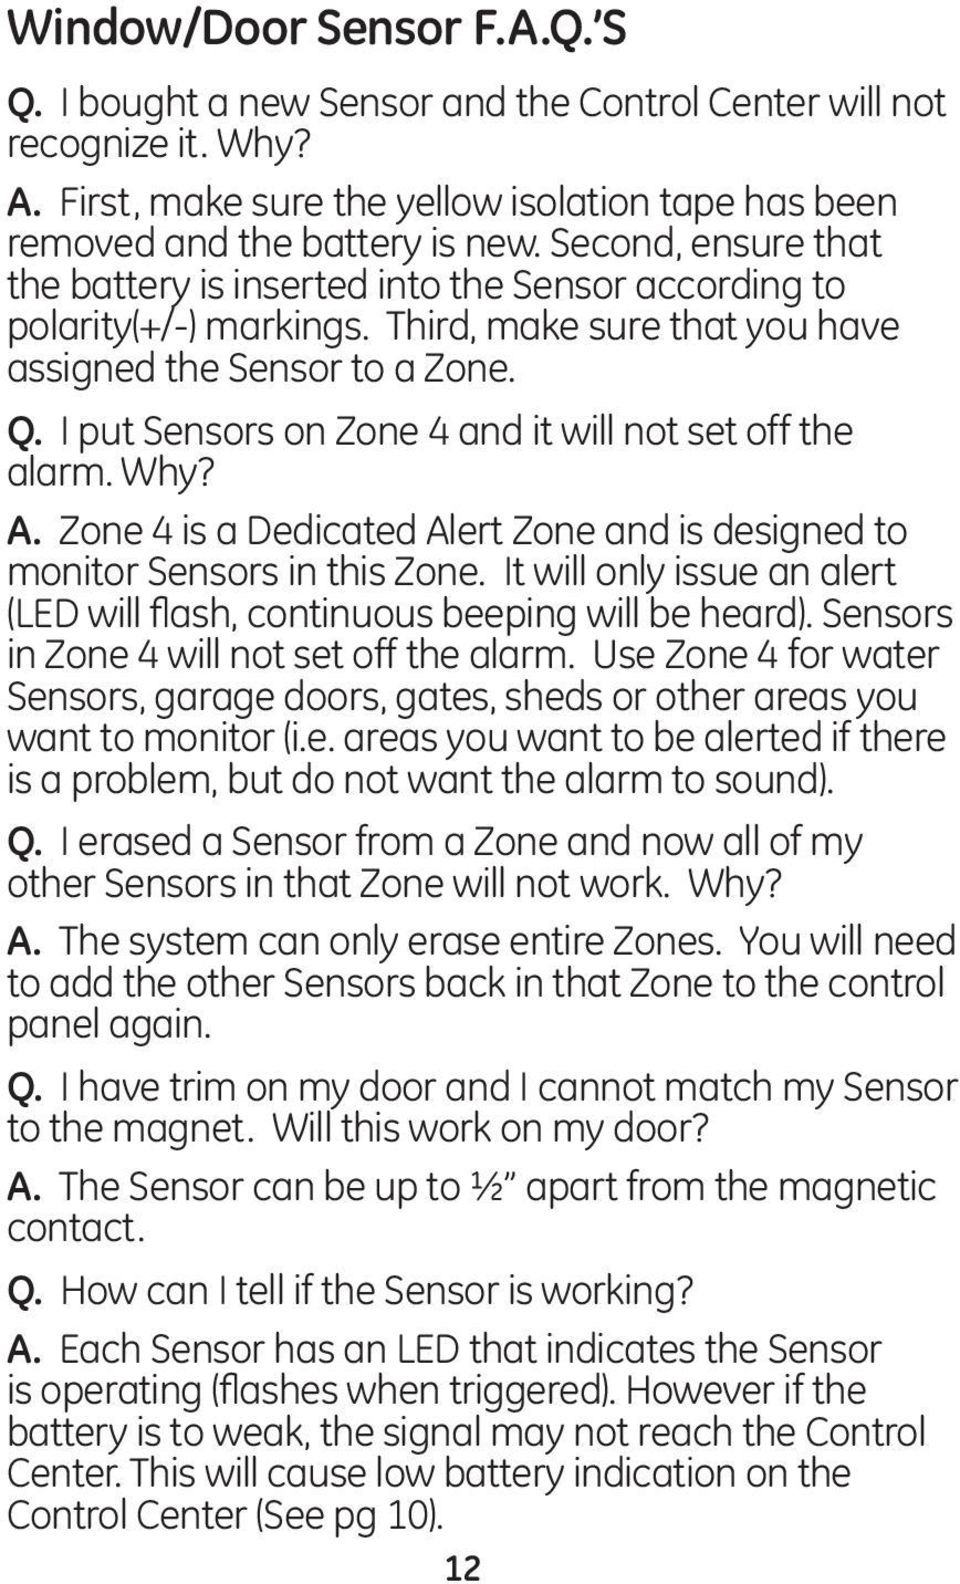 I put Sensors on Zone 4 and it will not set off the alarm. Why? A. Zone 4 is a Dedicated Alert Zone and is designed to monitor Sensors in this Zone.